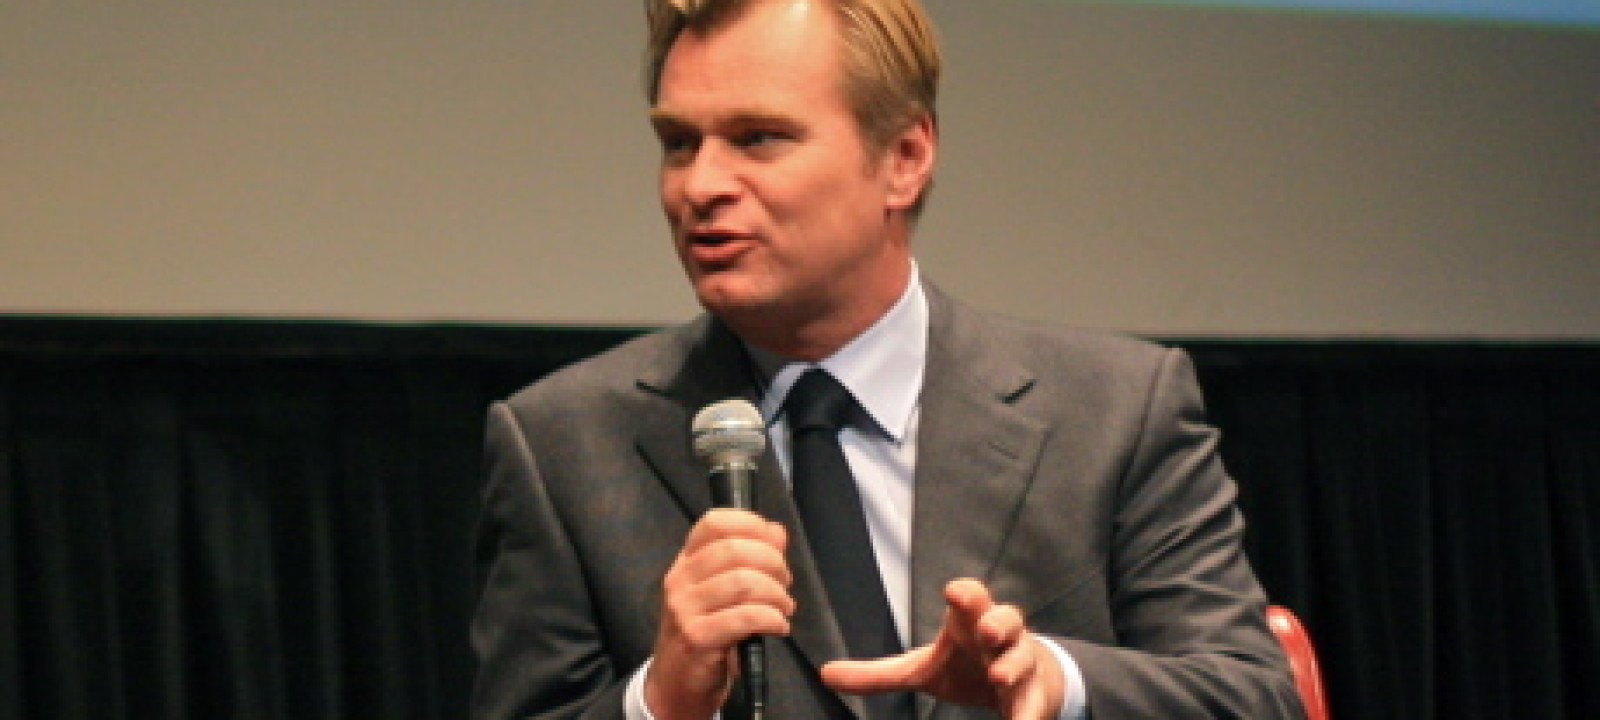 FSLC – Christopher Nolan 11.28